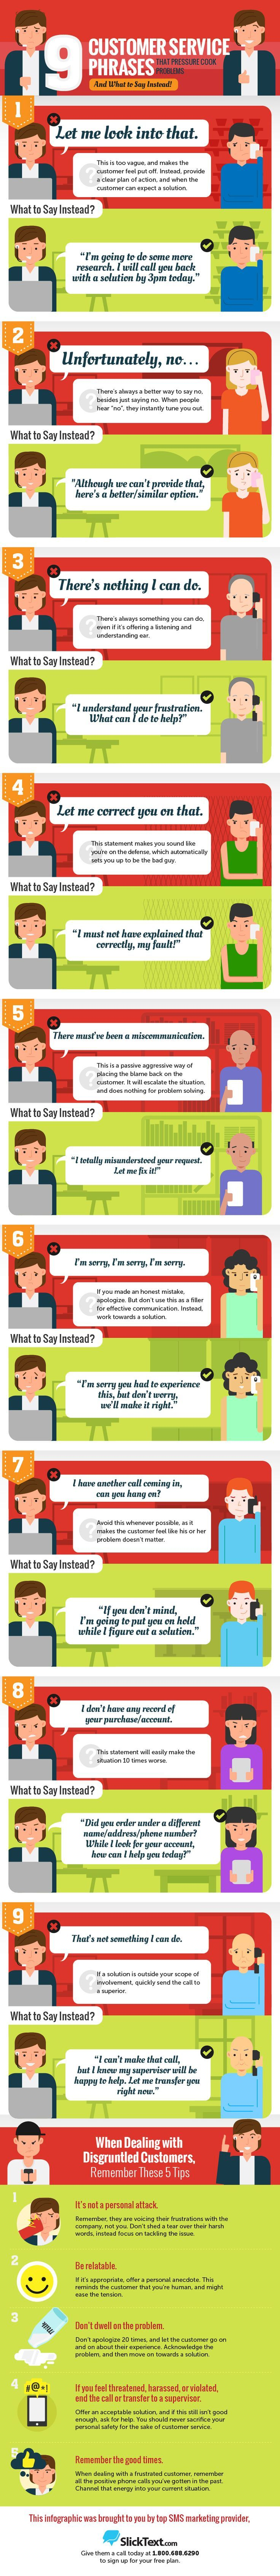 9 Customer Service Phrases that Pressure Cook Problems and What to ...